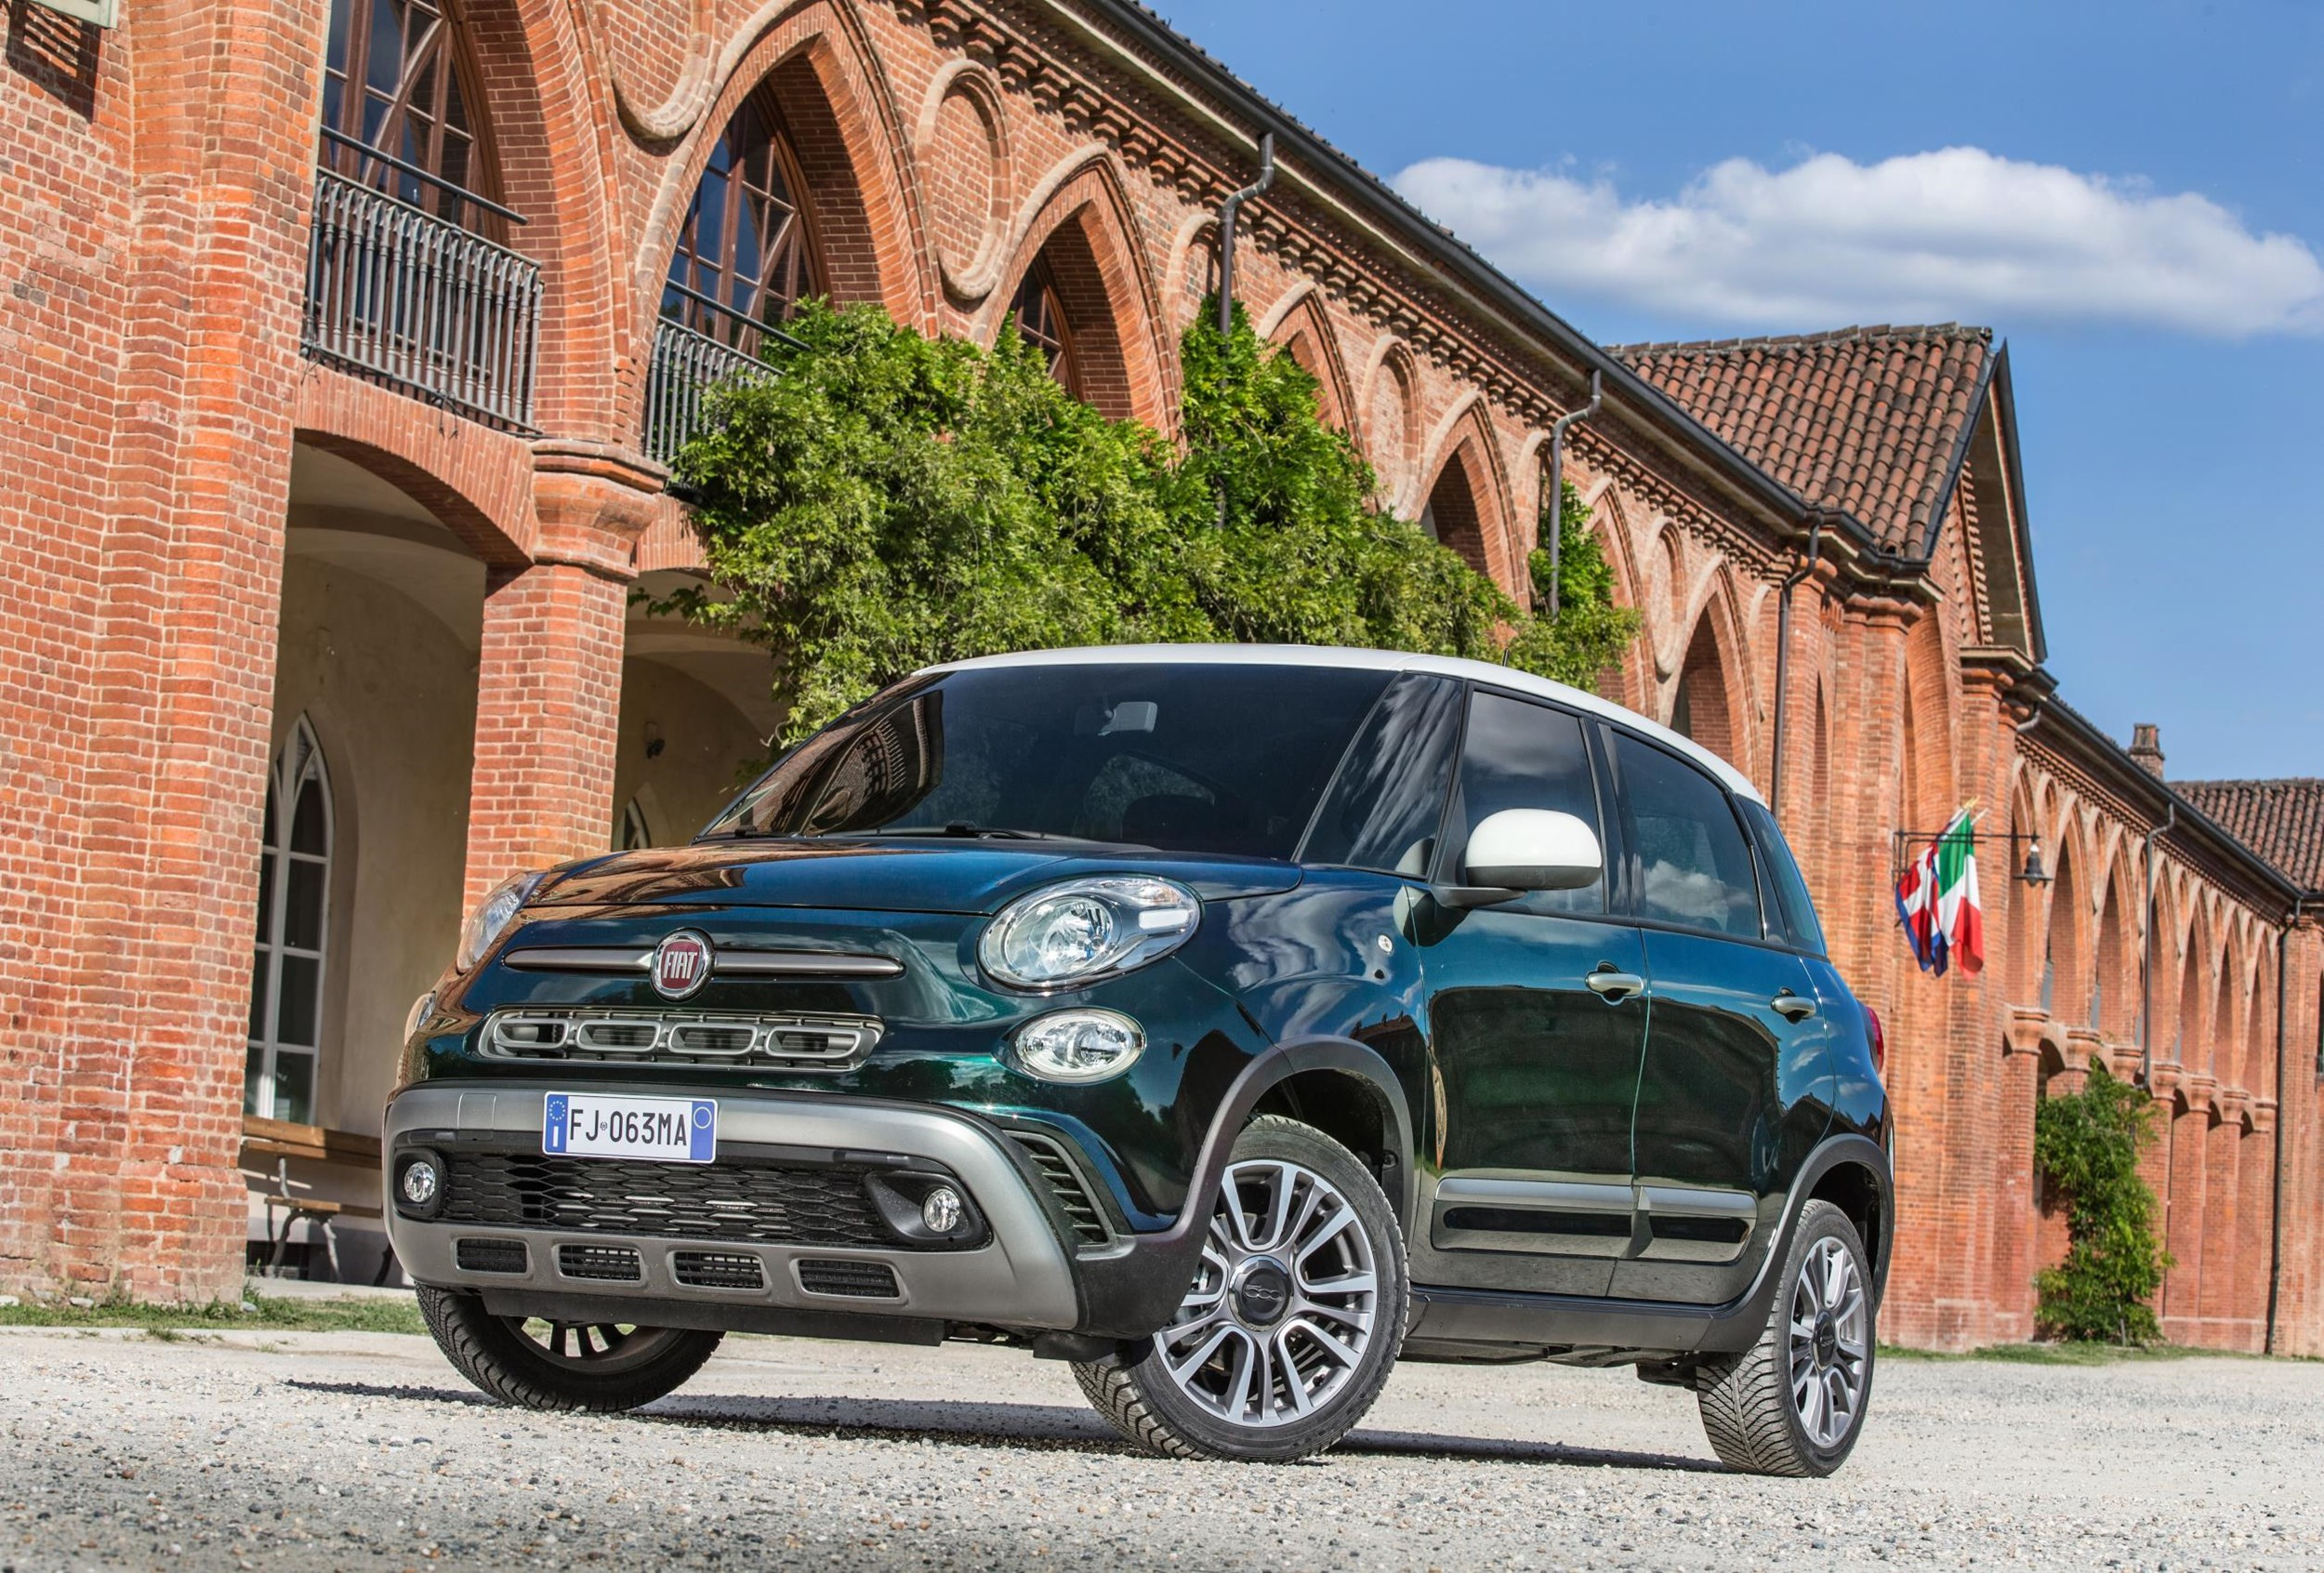 fiat to s vs express is mini good uk cute motoring surprisingly and fiats cheerful evening drive